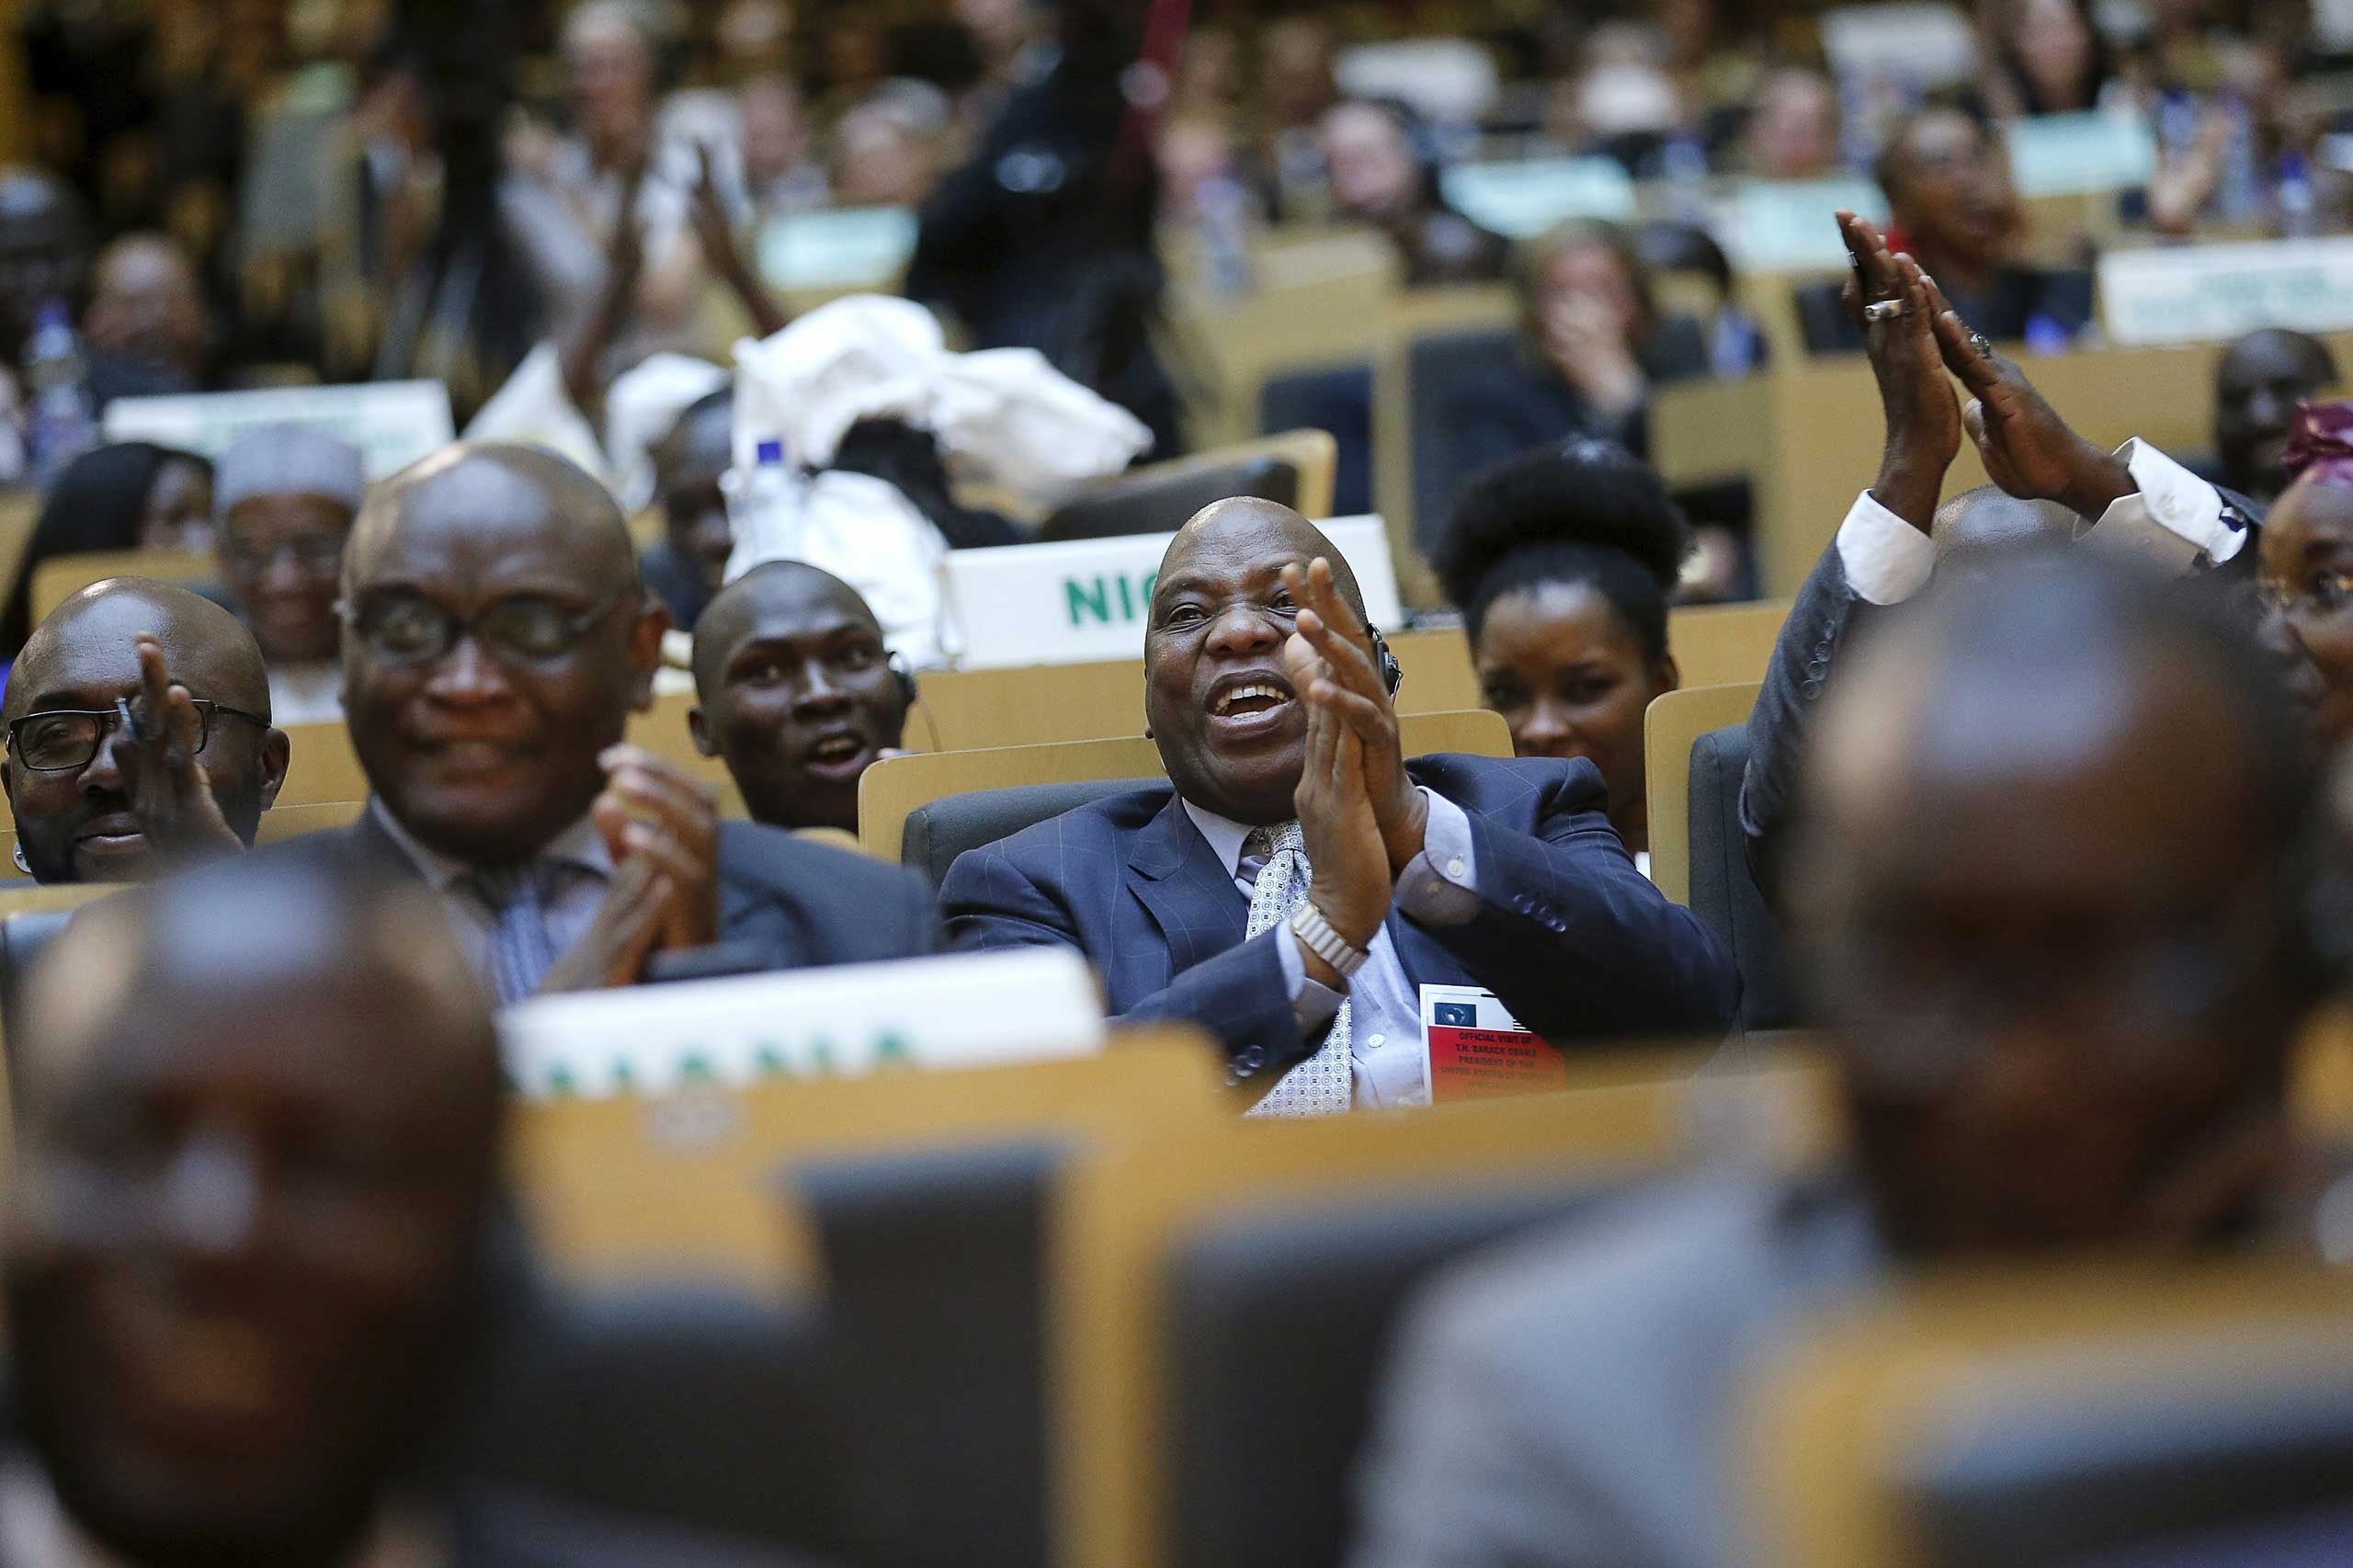 Delegates react to remarks by President Barack Obama at the African Union in Addis Ababa on July 28, 2015.